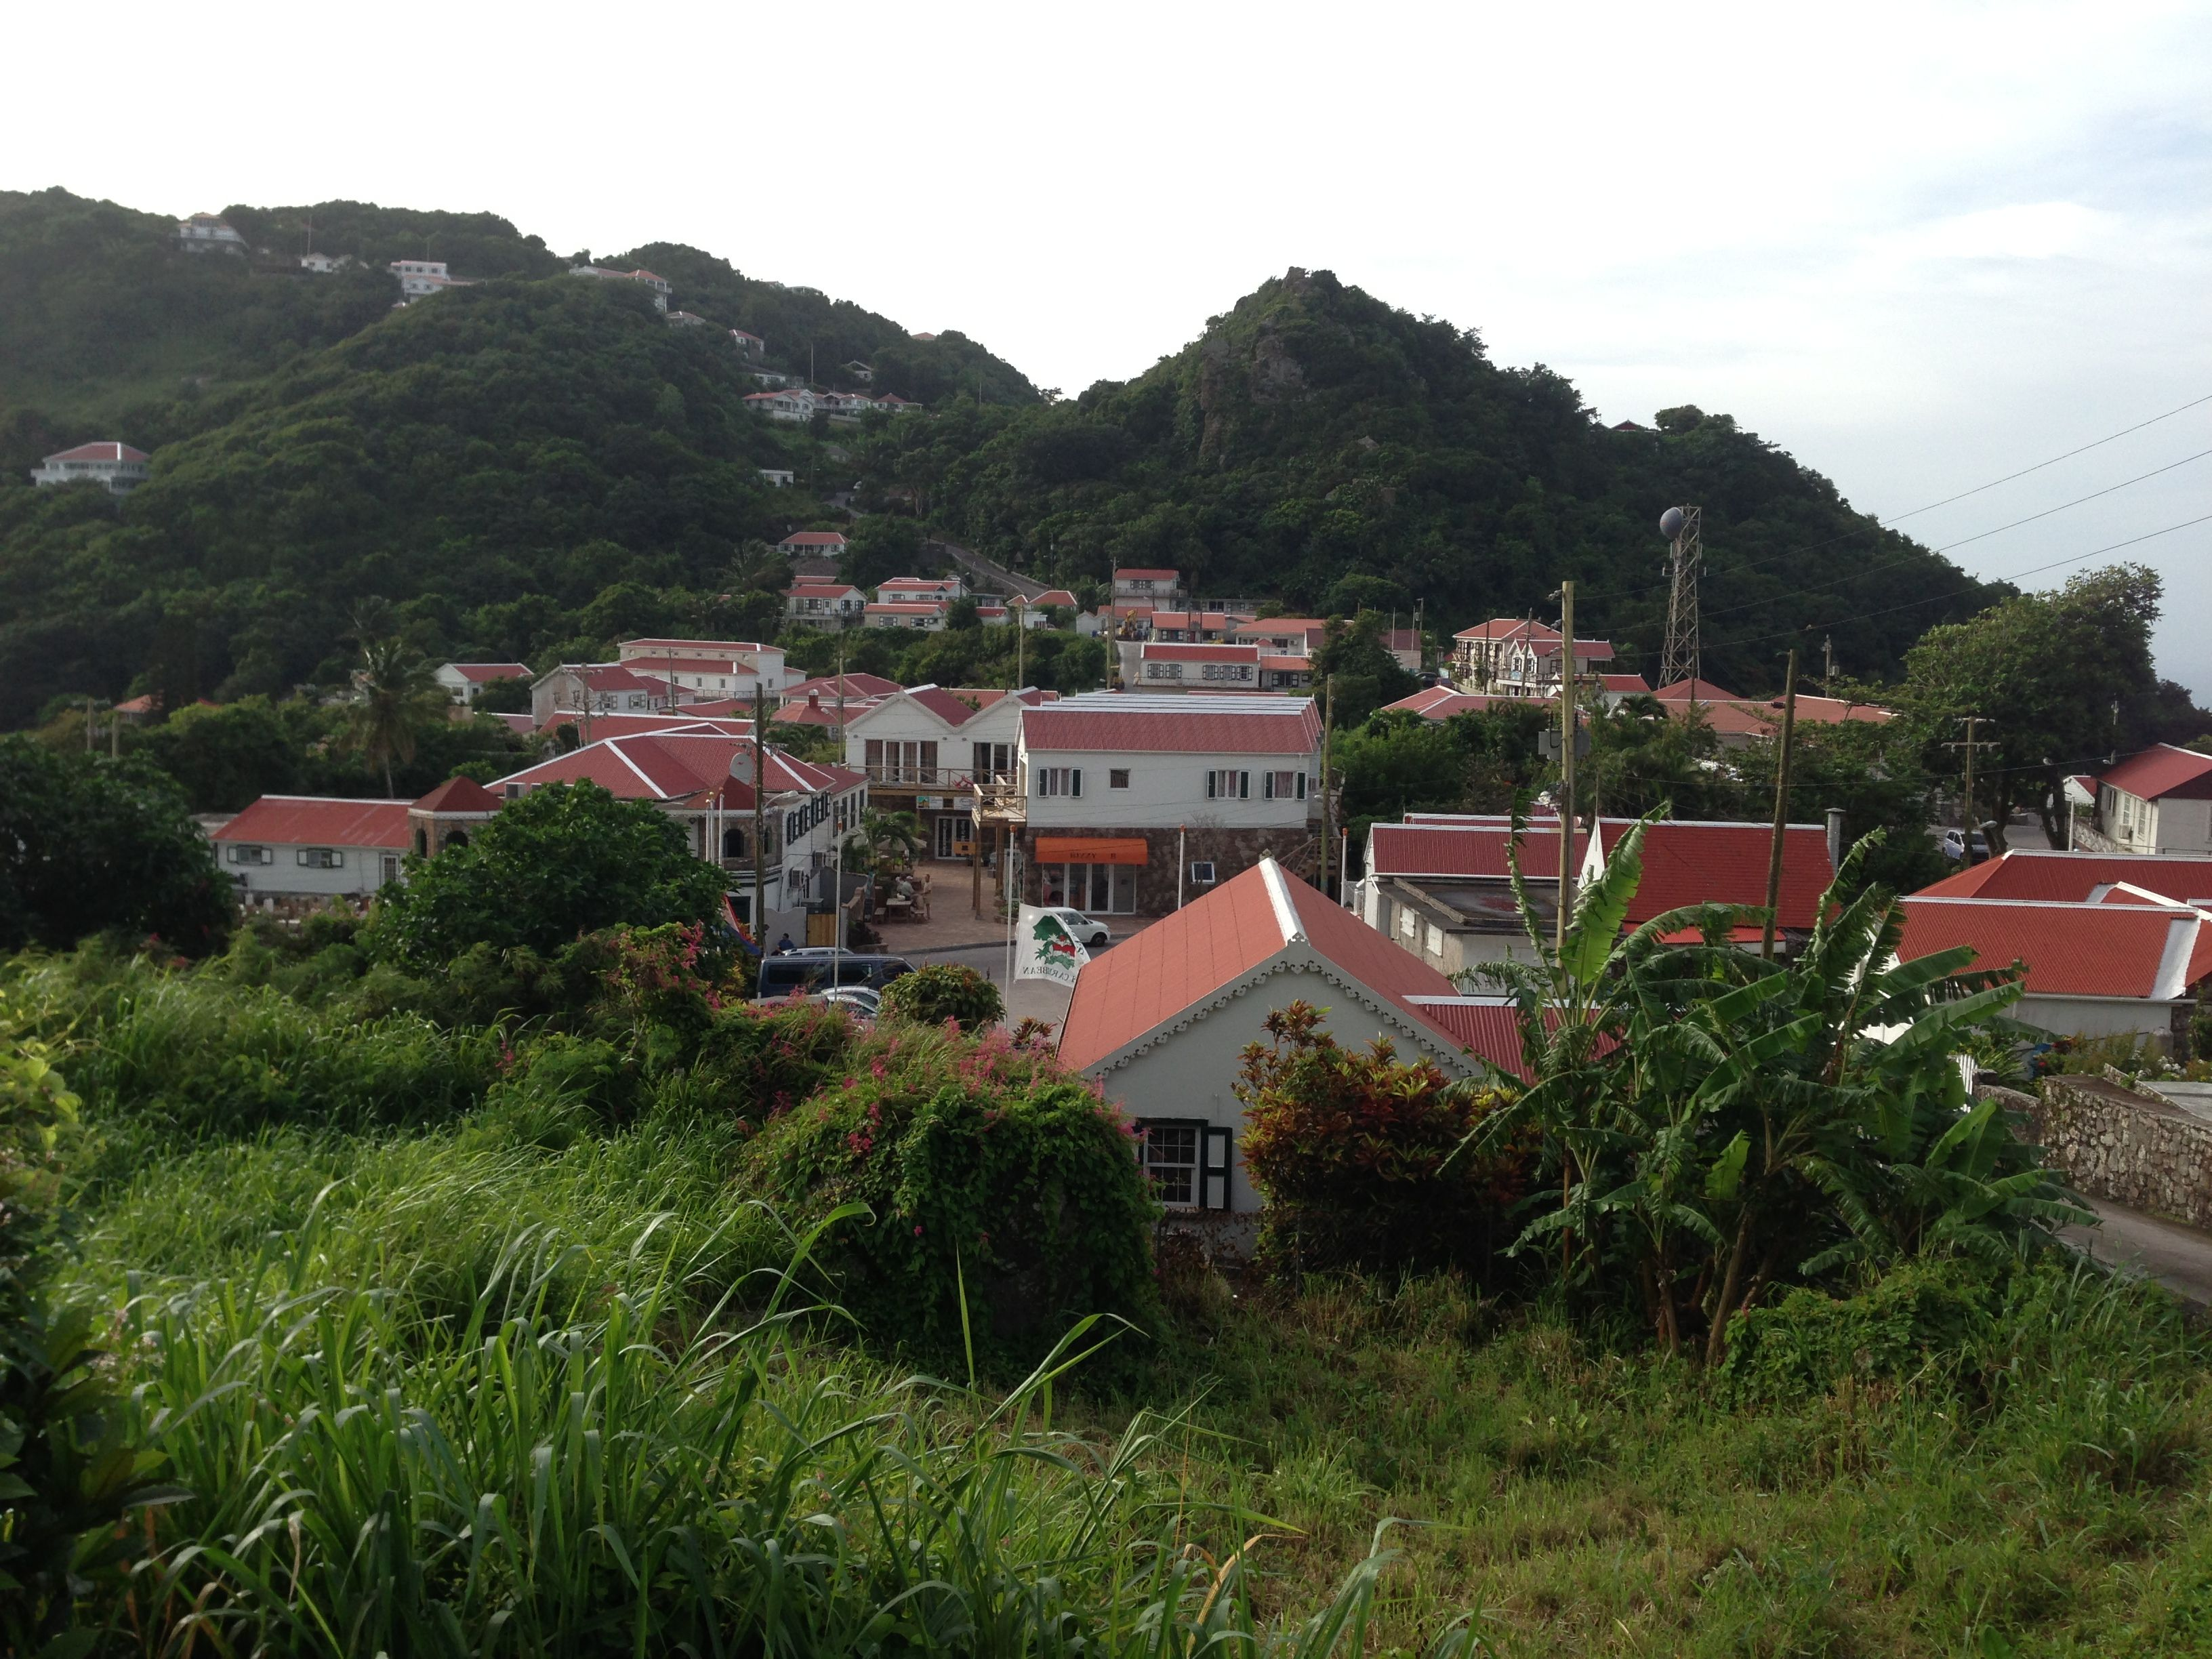 On Saba, all the houses look the same. Pretty white cottages with red  roofs, green shutters and perhaps a small white gate. It's part of the  island